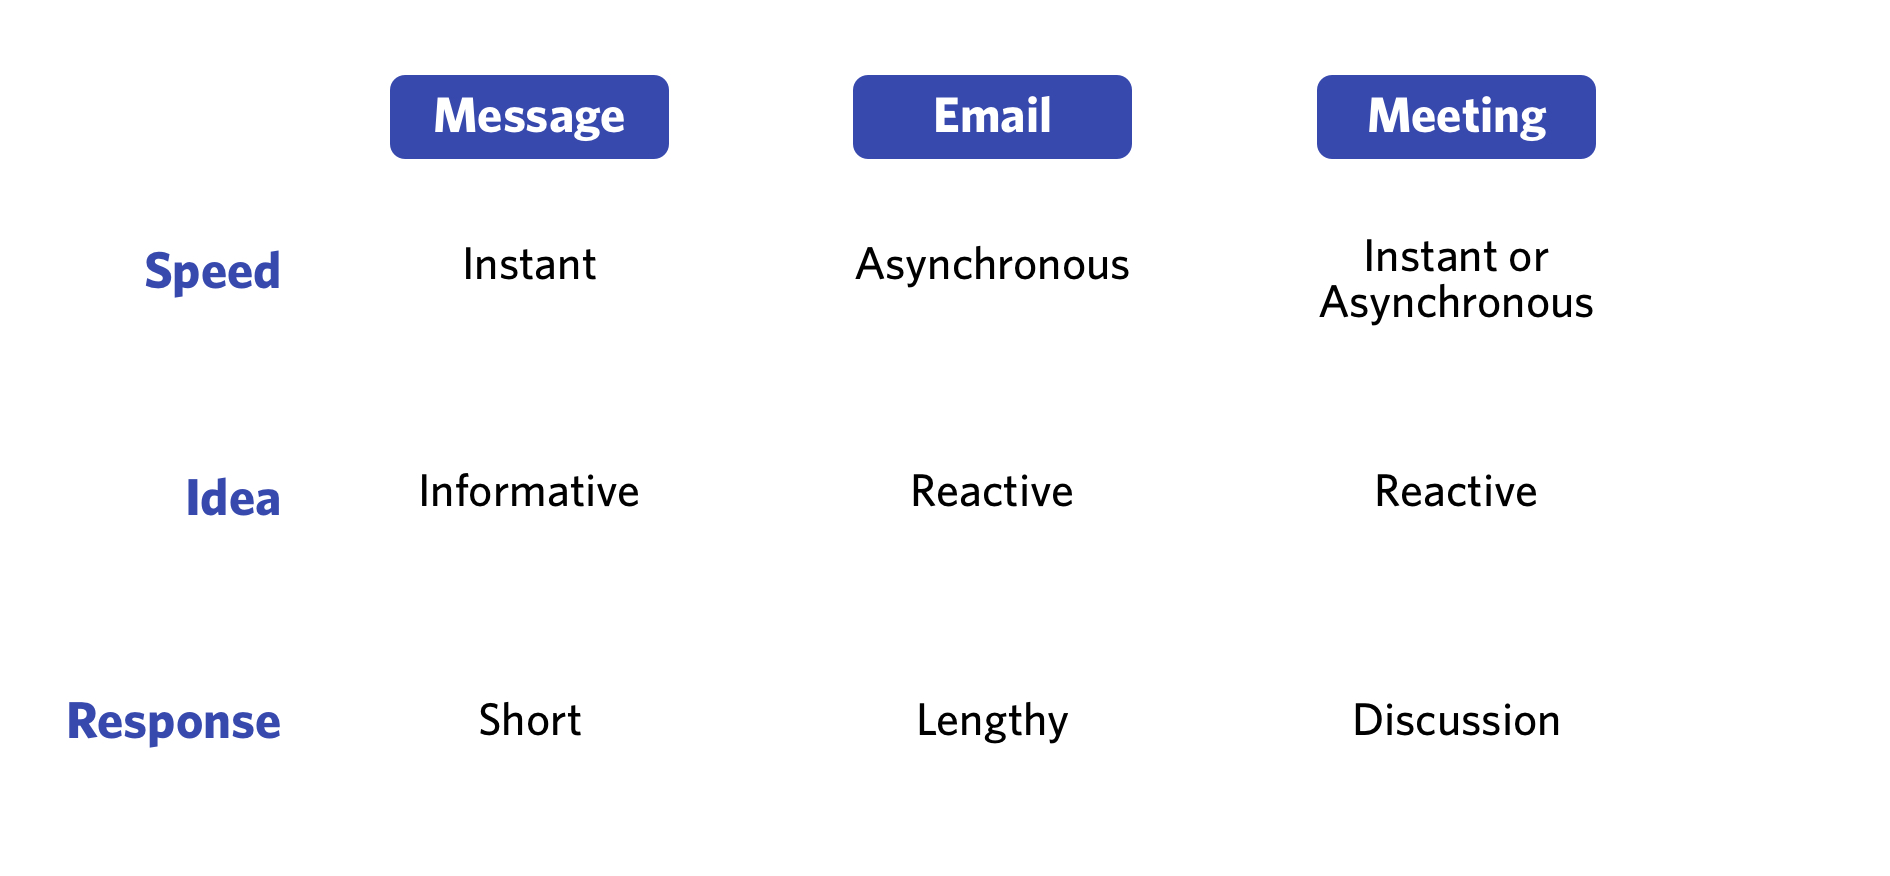 diagram for questions to ask yourself when you're deciding to email, schedule a meeting, or send an internal message